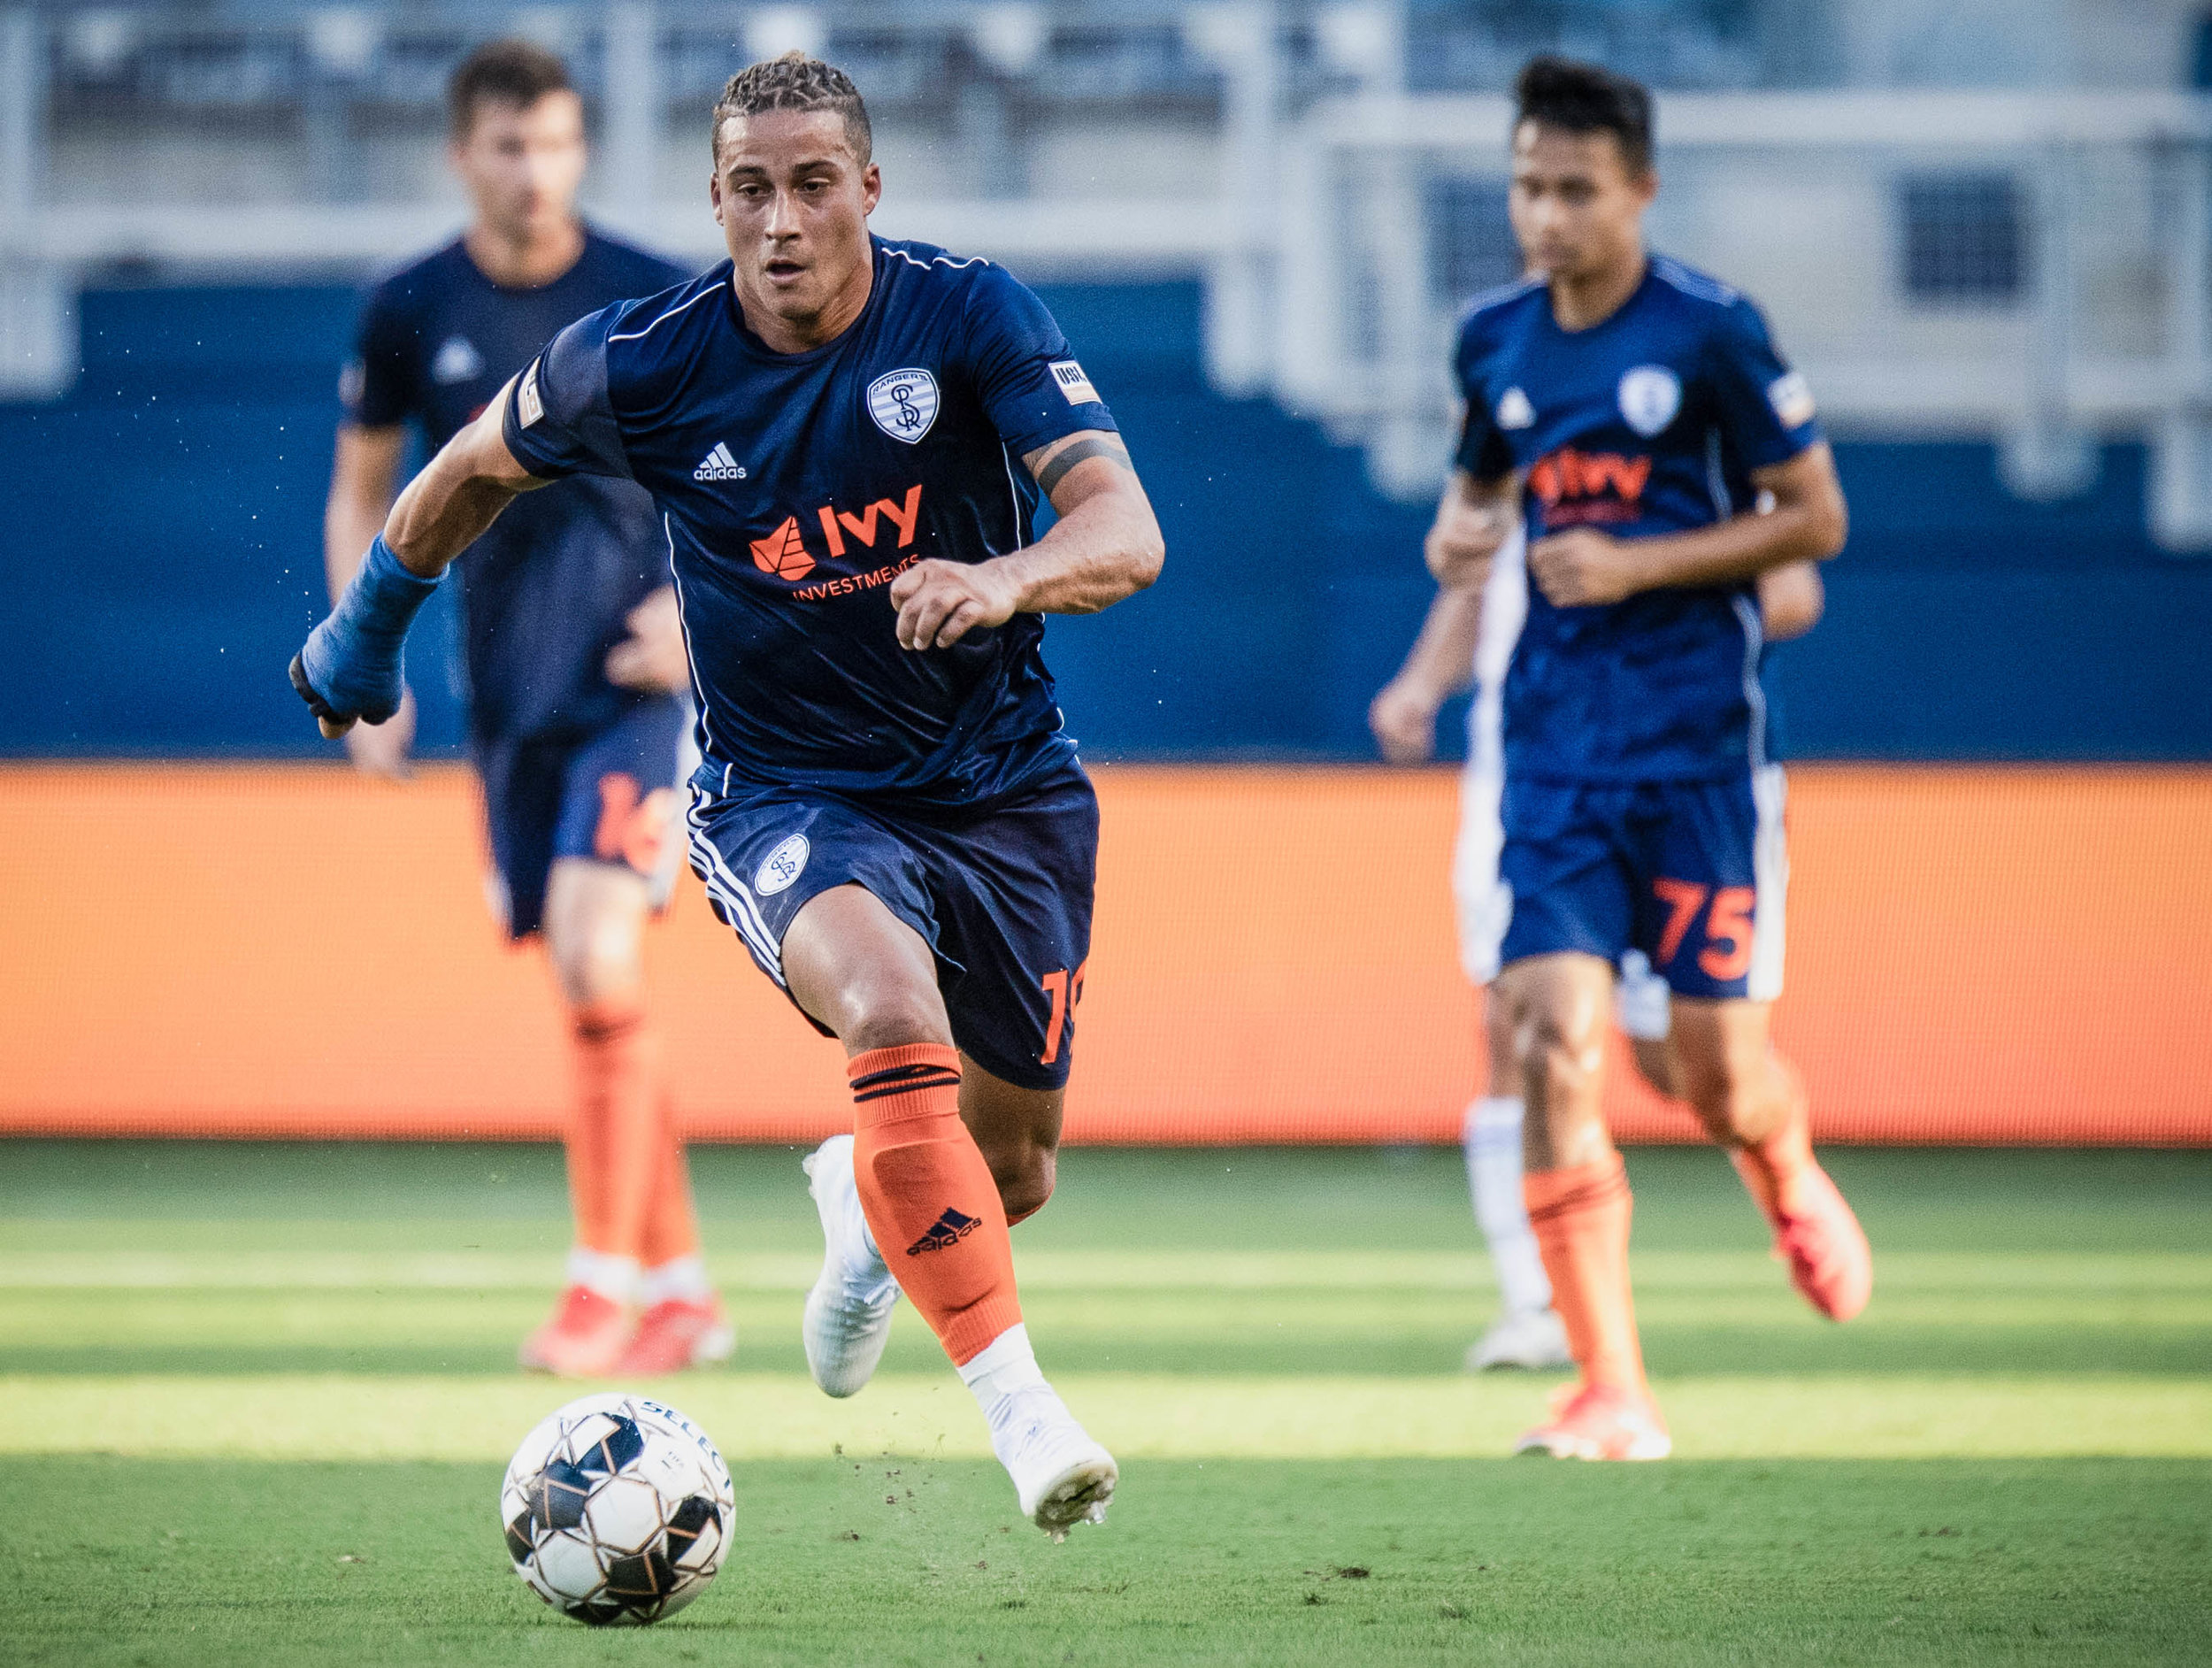 Erik Hurtado dribbles the ball during the Swope Park Rangers vs. Hartford Athletic match on Wednesday, July 17, 2019 at Children's Mercy Park in Kansas City, Kansas. The Rangers defeated Hartford 4-3 improving their record to 3-6-9.